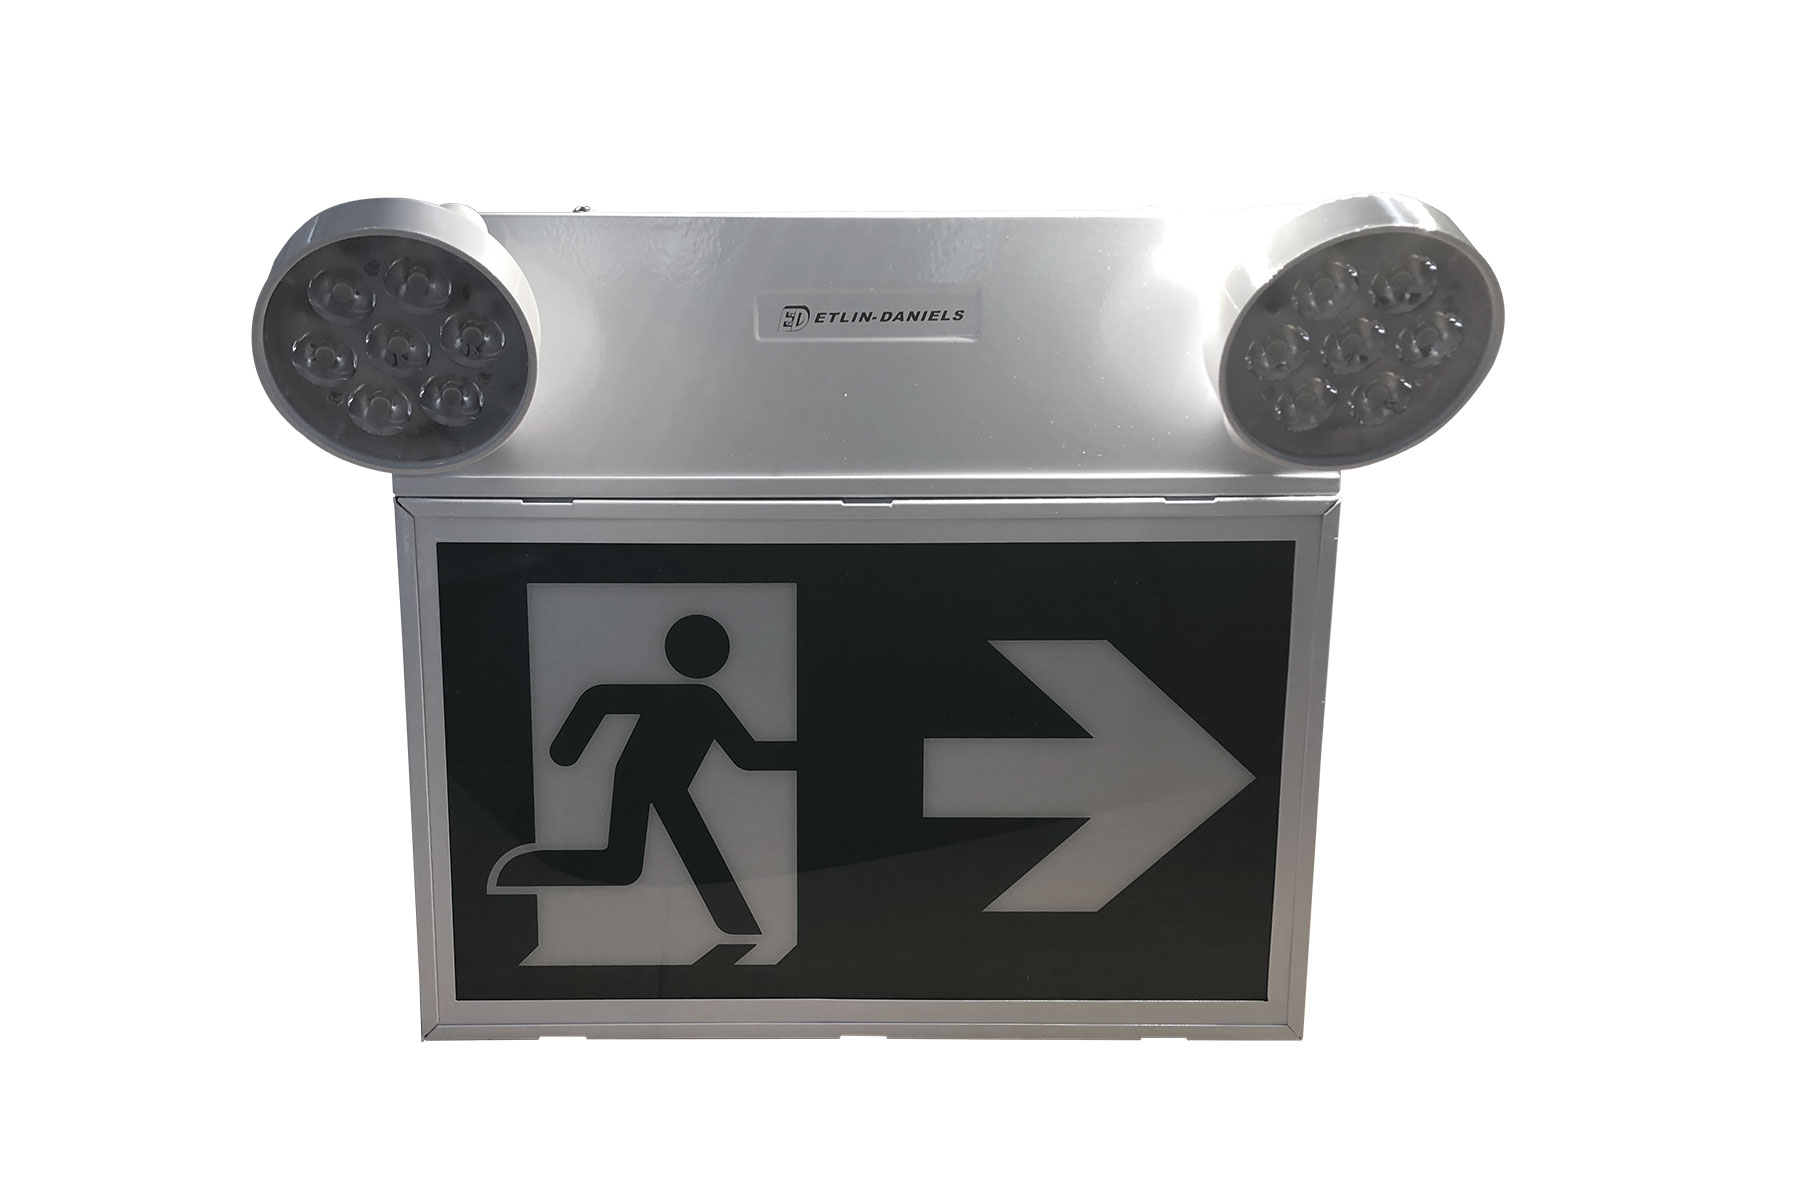 EC302WHM-A13-BB-GU-10RC - LED RUNNING MAN EXIT SIGN WITH COMBO HEADS